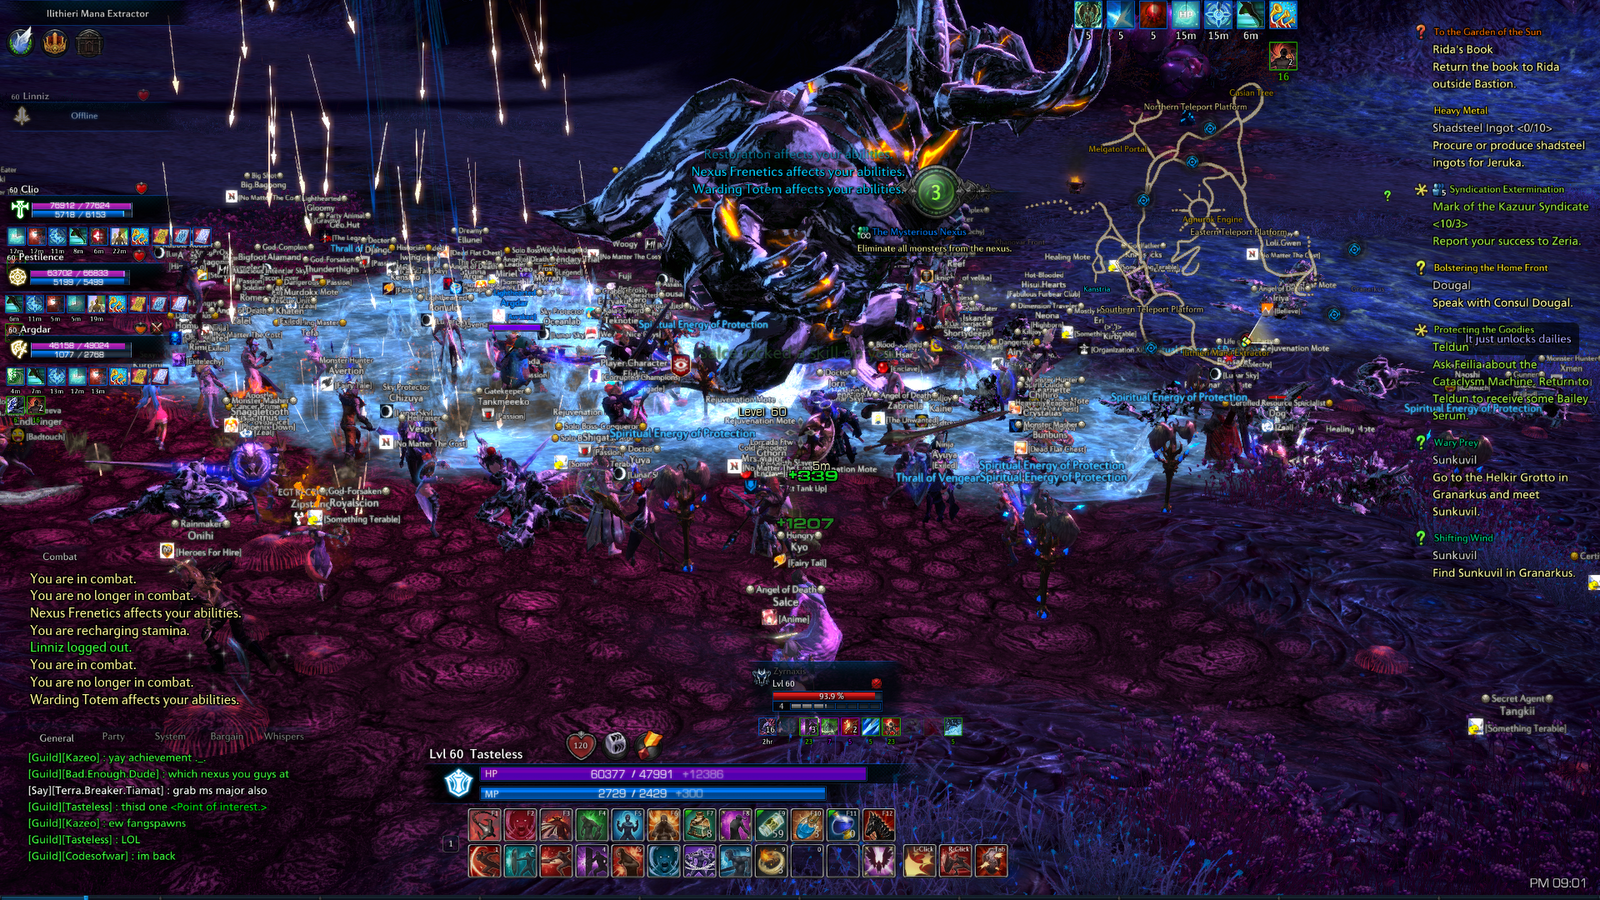 Zerg rush - Pretty Sure The Enemy Did Not Expect A Zerg Rush To Come Ruin Their Nexus Party This Is Tera S Rift Version But Called Nexus There Are 3 Waves In A Nexus